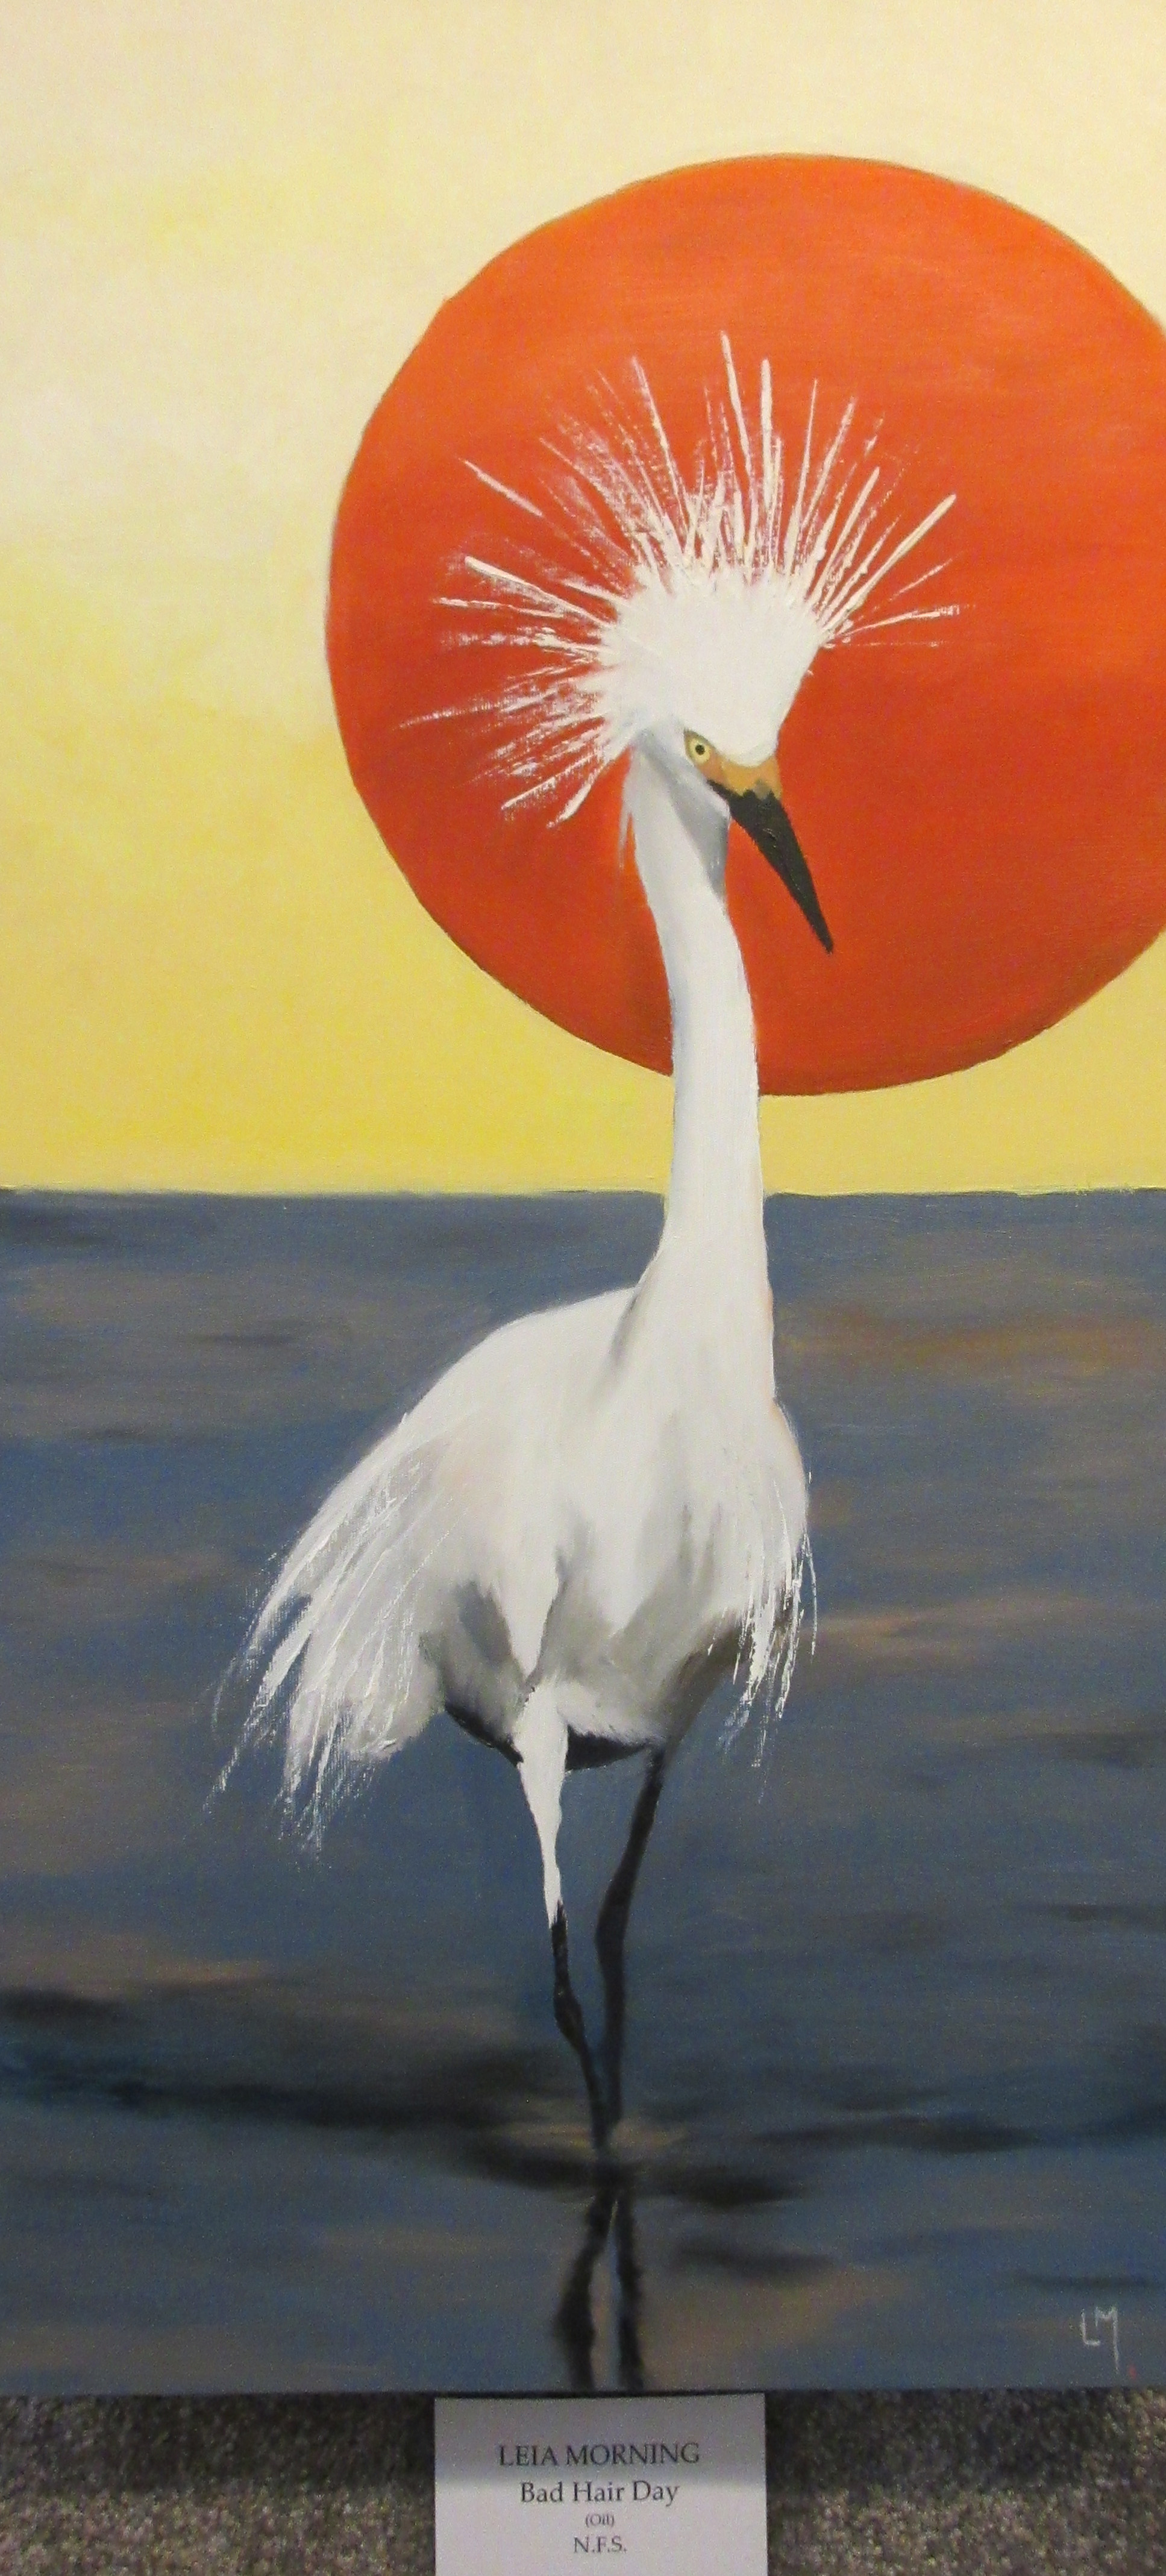 "oil painting of a bird with spiky hair called ""Bad Hair Day"""